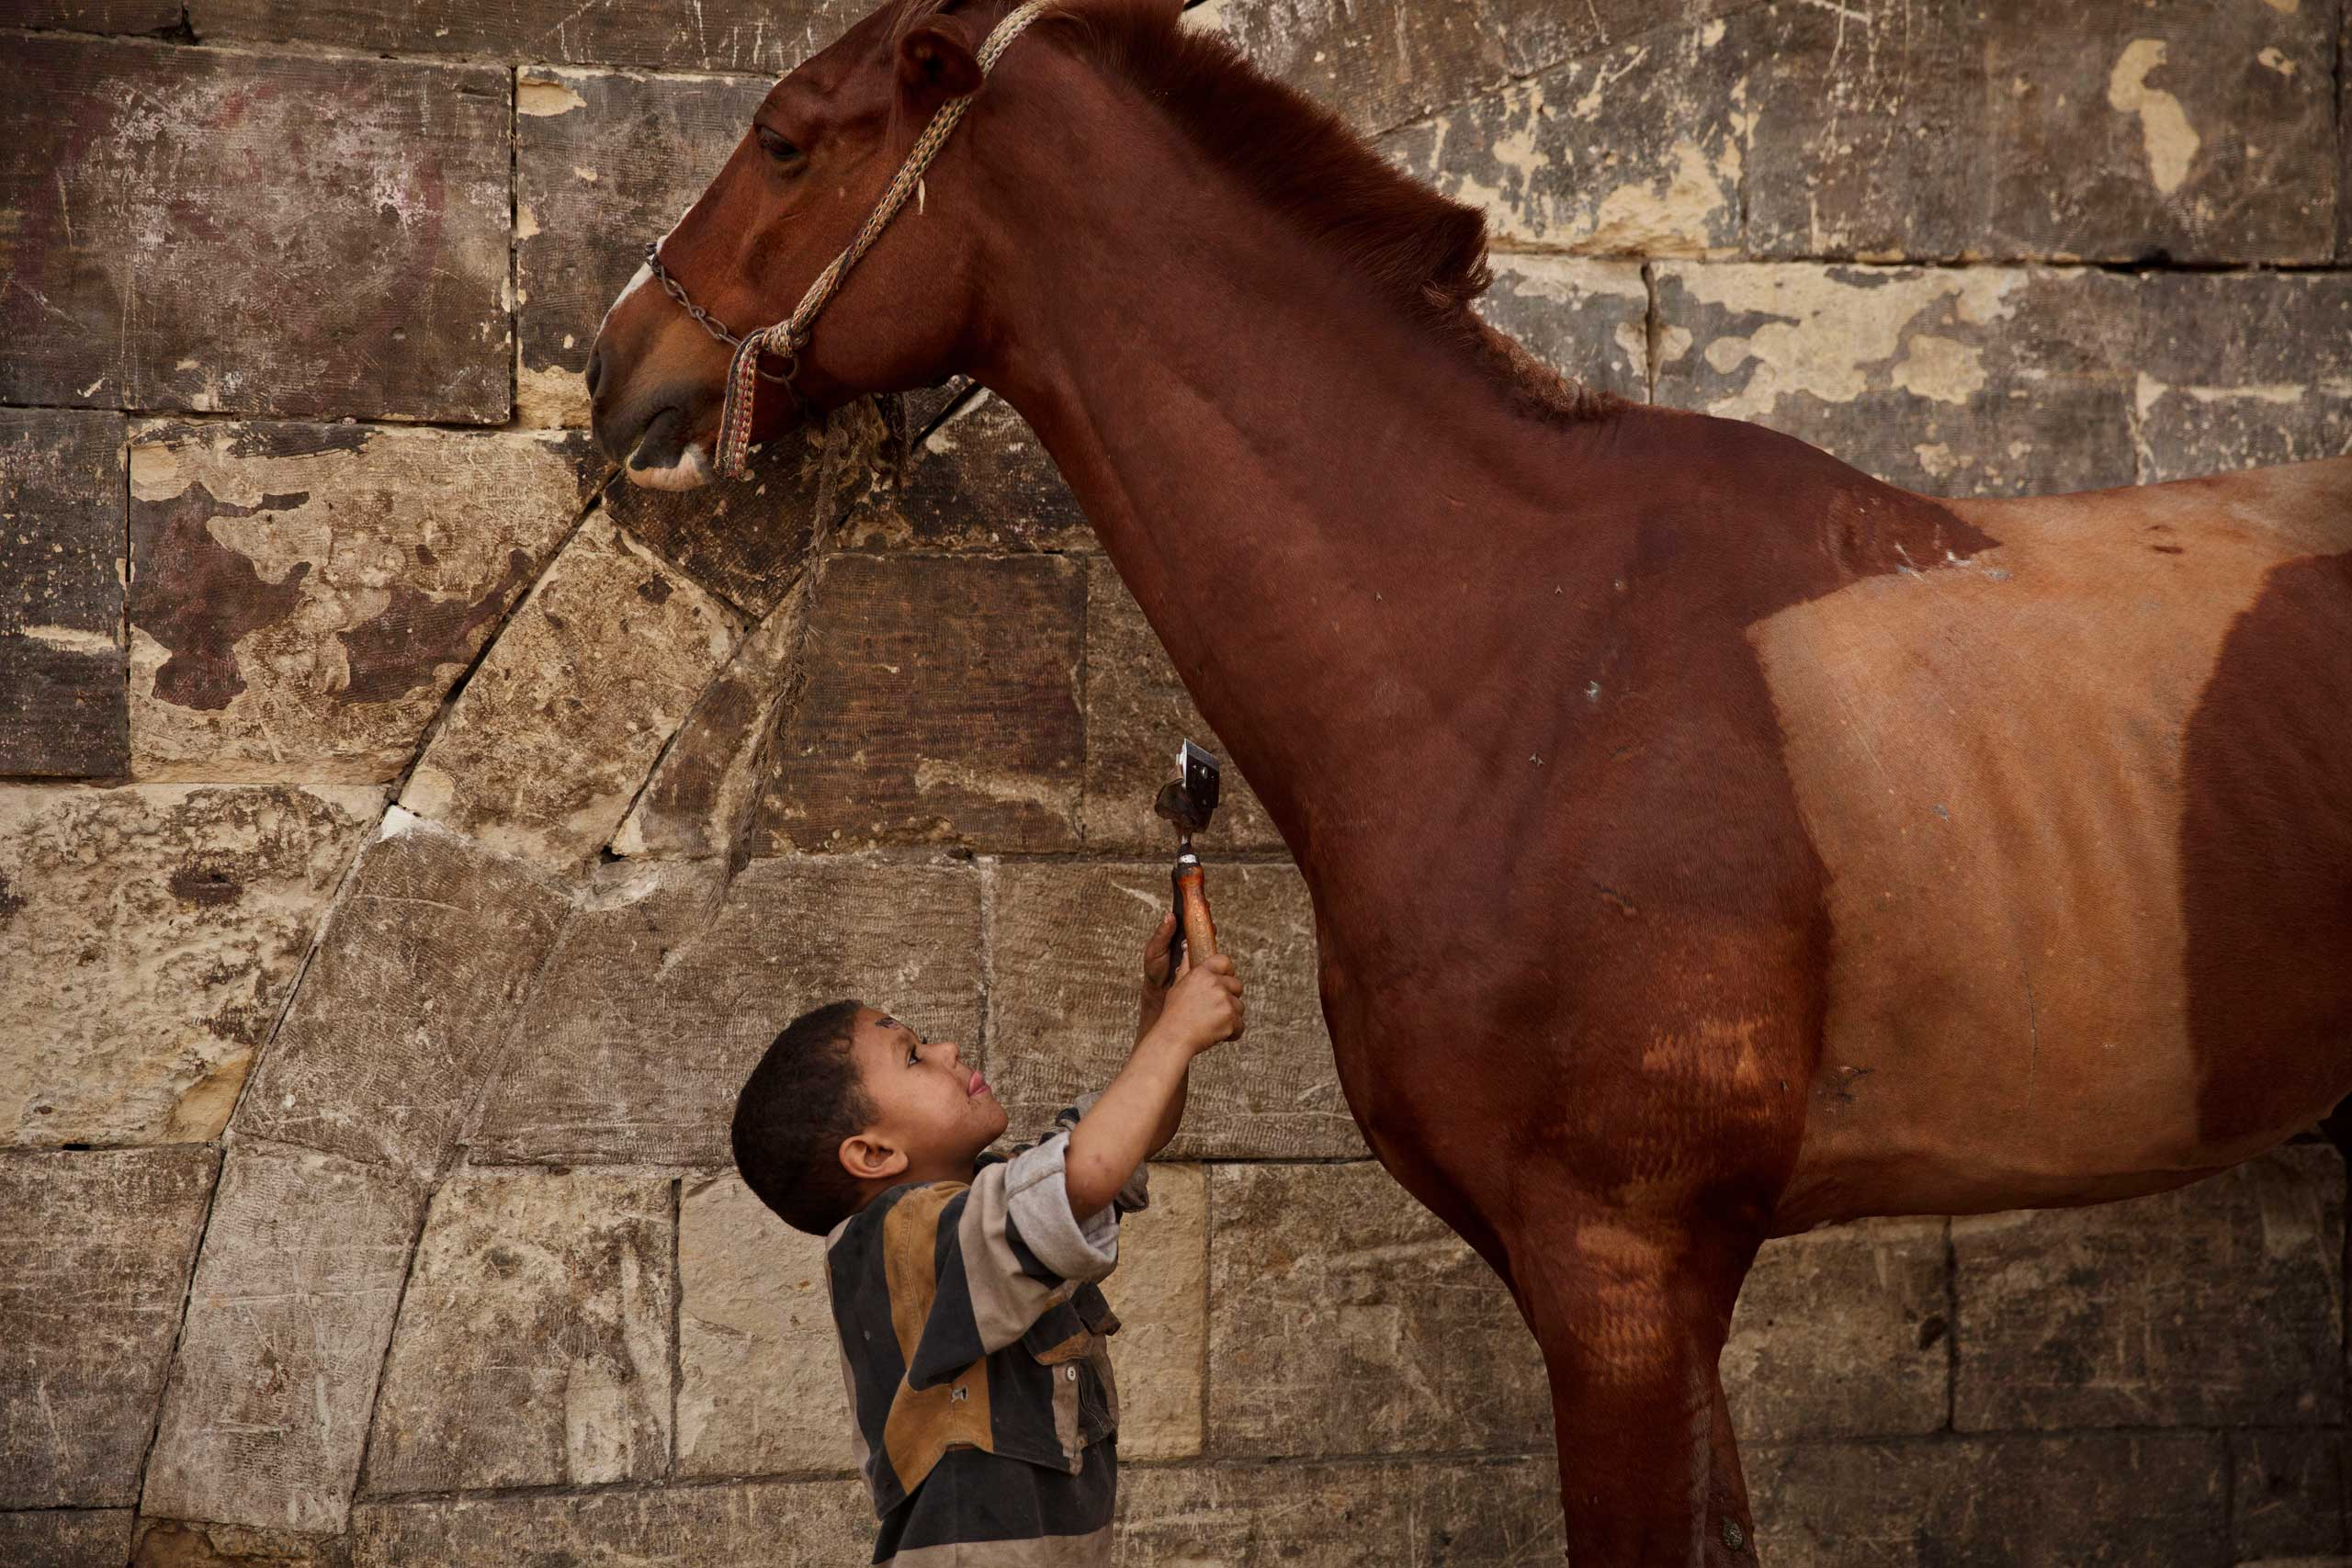 Mustafa Mohamed, 5, reaches to trim a horse at his father's makeshift animal barber shop in Cairo, March 8, 2014.